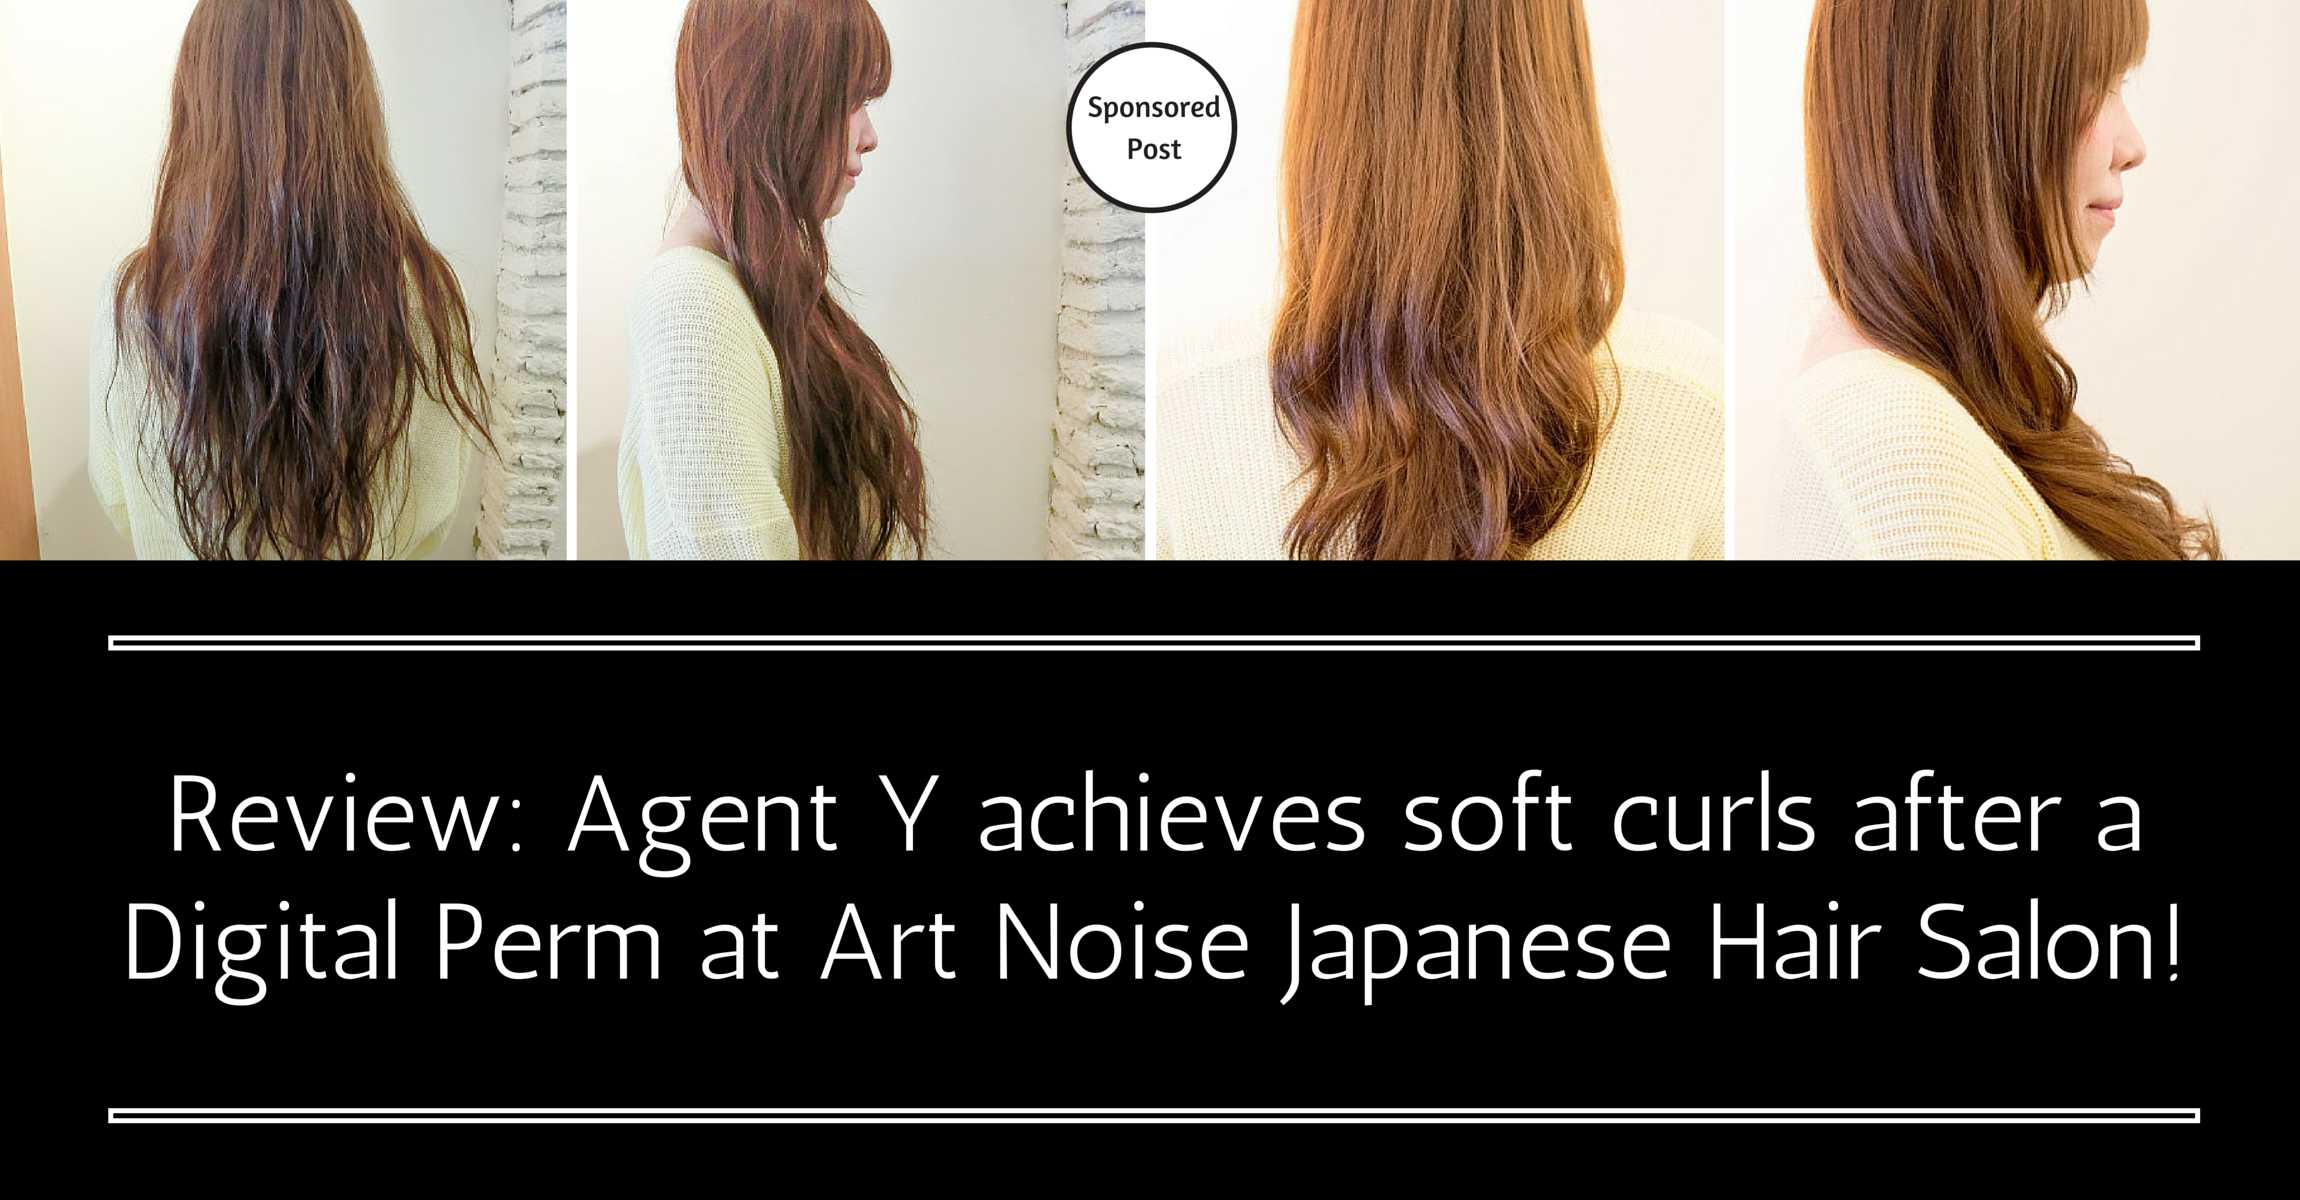 Love those bouncy curls you see in Japanese magazines? Agent Y achieved those soft curls after a Digital Perm at Art Noise Japanese Hair Salon!